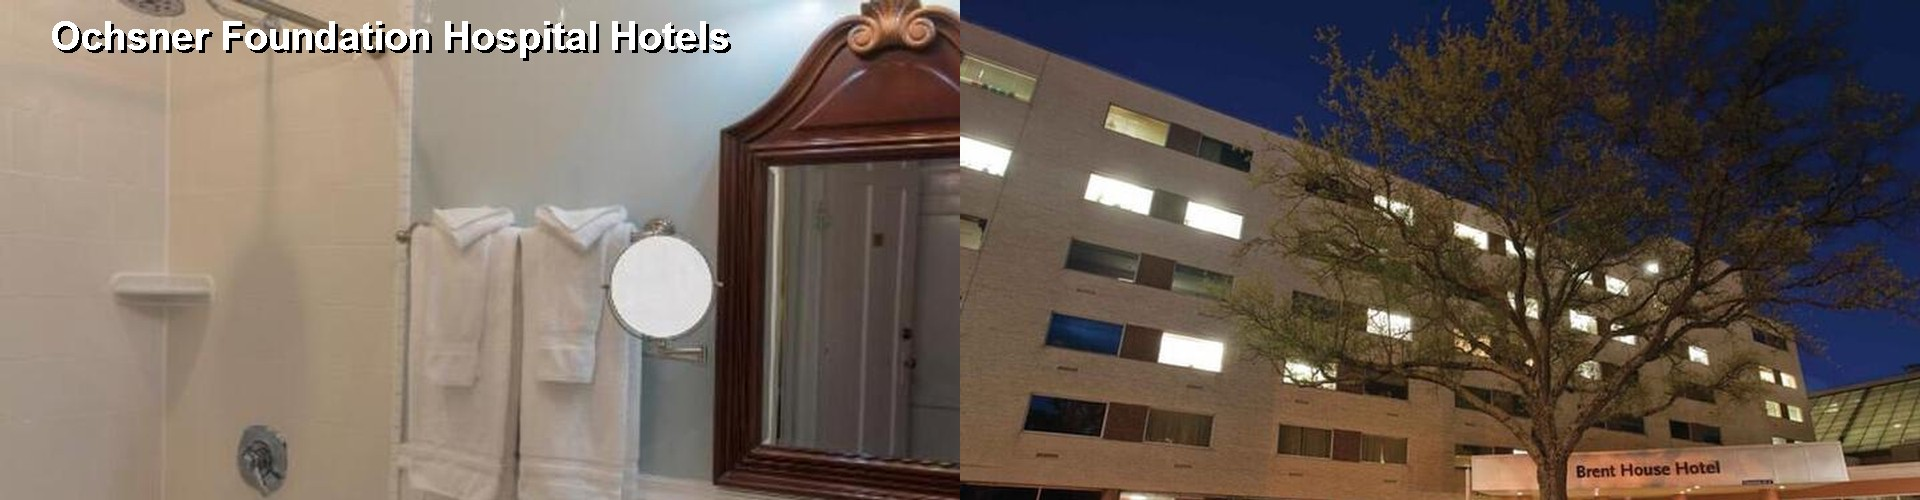 5 Best Hotels near Ochsner Foundation Hospital